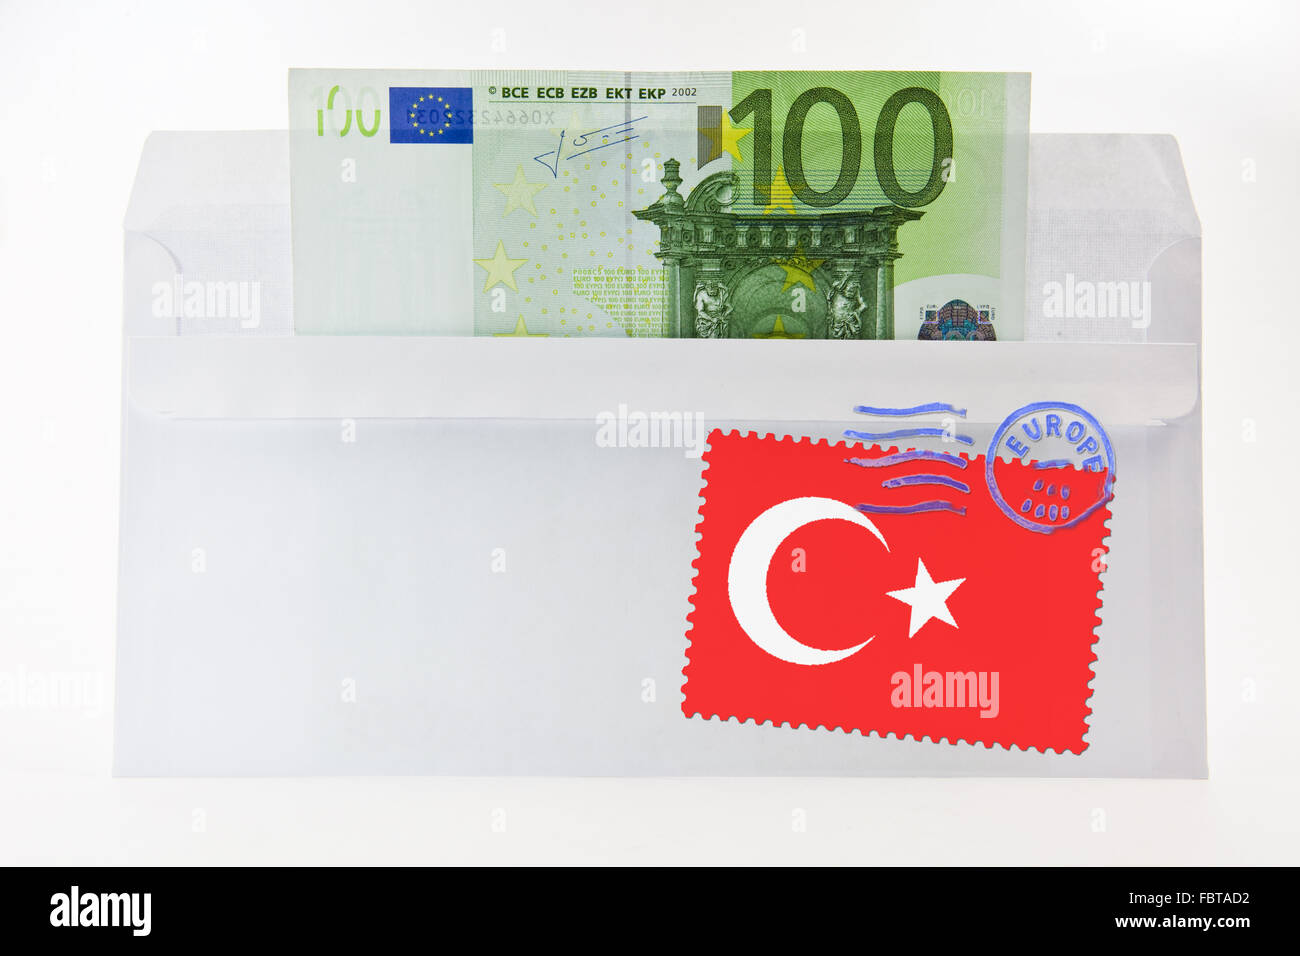 Item of correspondence with 100 EUR - Stock Image